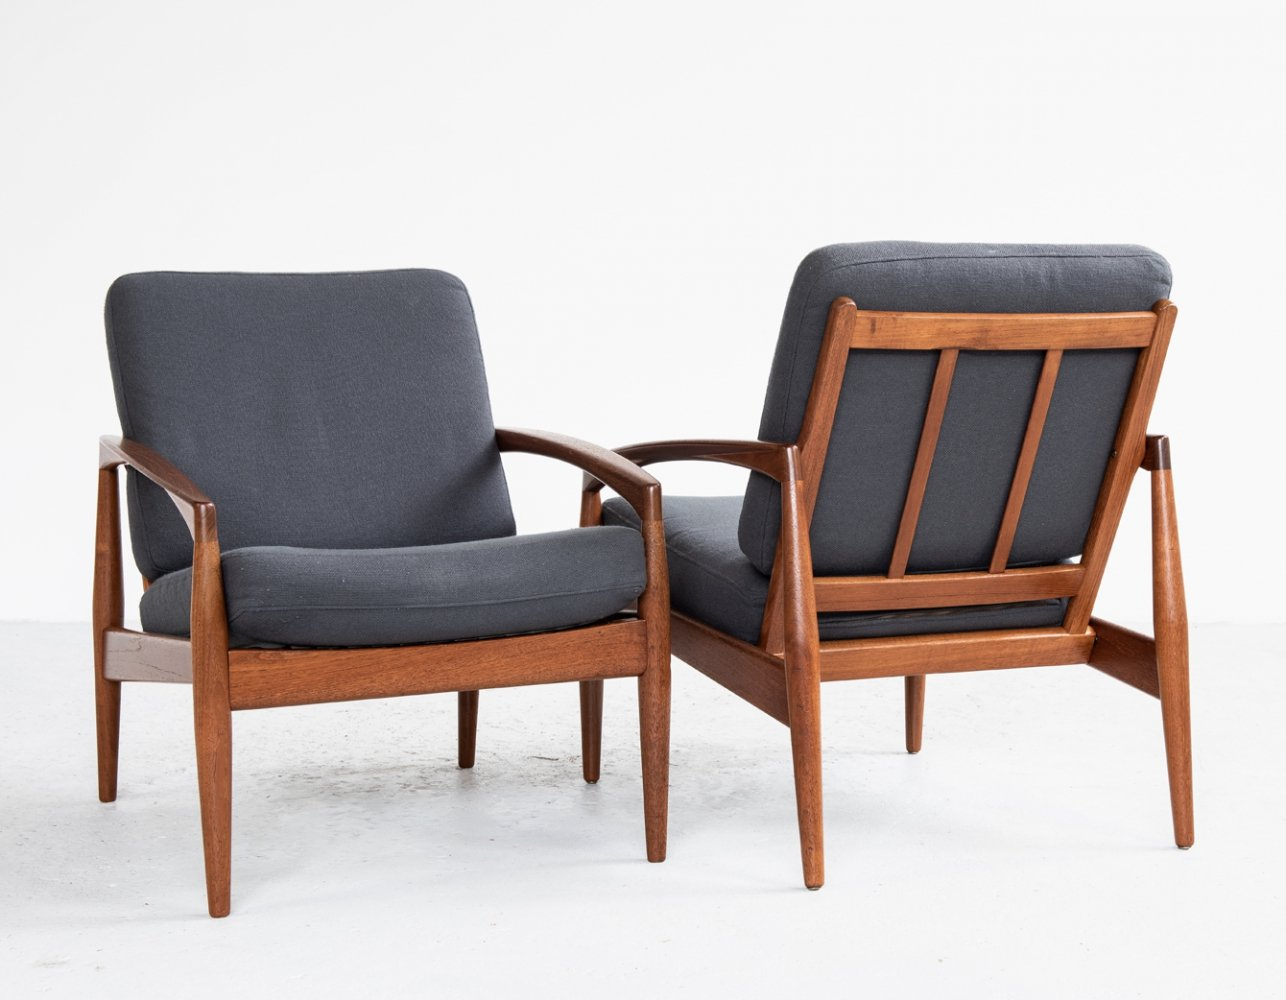 Pair of Paper Knife arm chairs by Kai Kristiansen for Magnus Olesen, 1960s